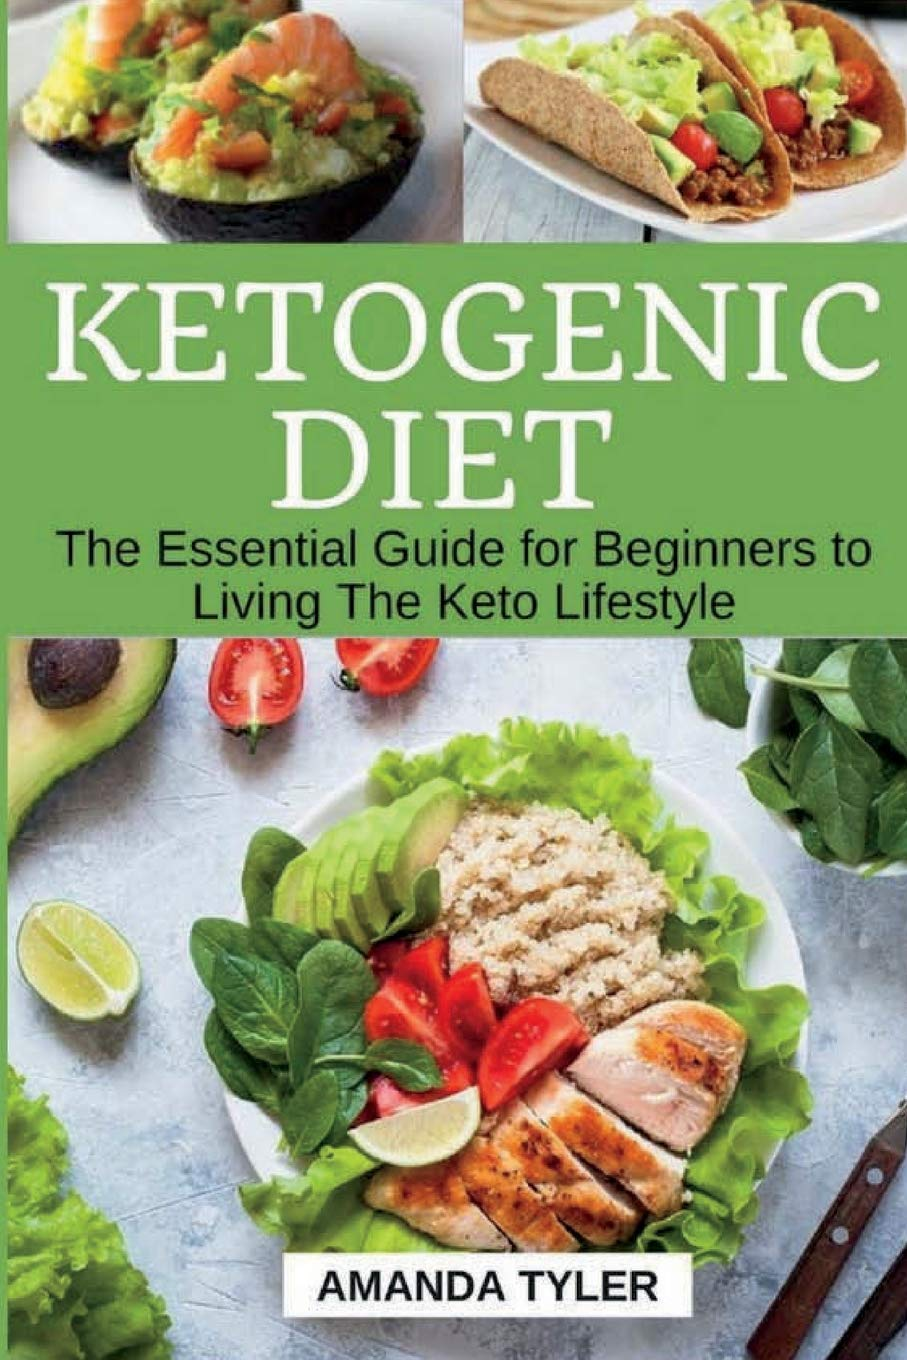 Ketogenic Diet: The Essential Guide for Beginners to Living The Keto Lifestyle (Weight Loss, Fat Loss, Low-Carb Diet, High-Fat Diet, Keto Guide, Recipes, Keto Diet For Beginners) pdf epub